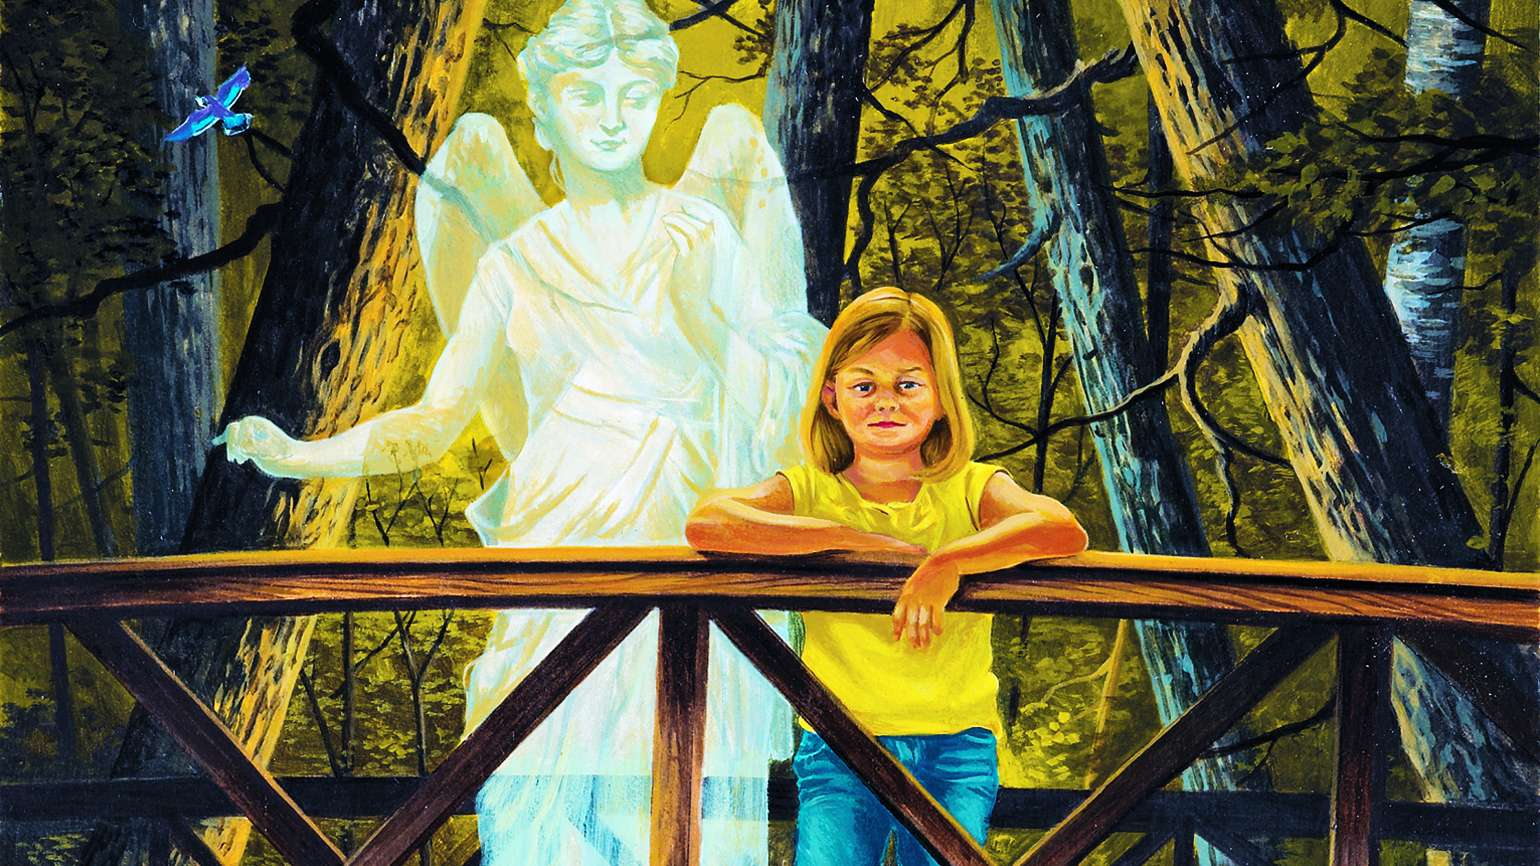 Young girl on a bridge with a sad expression as her guardian angel appears behind her